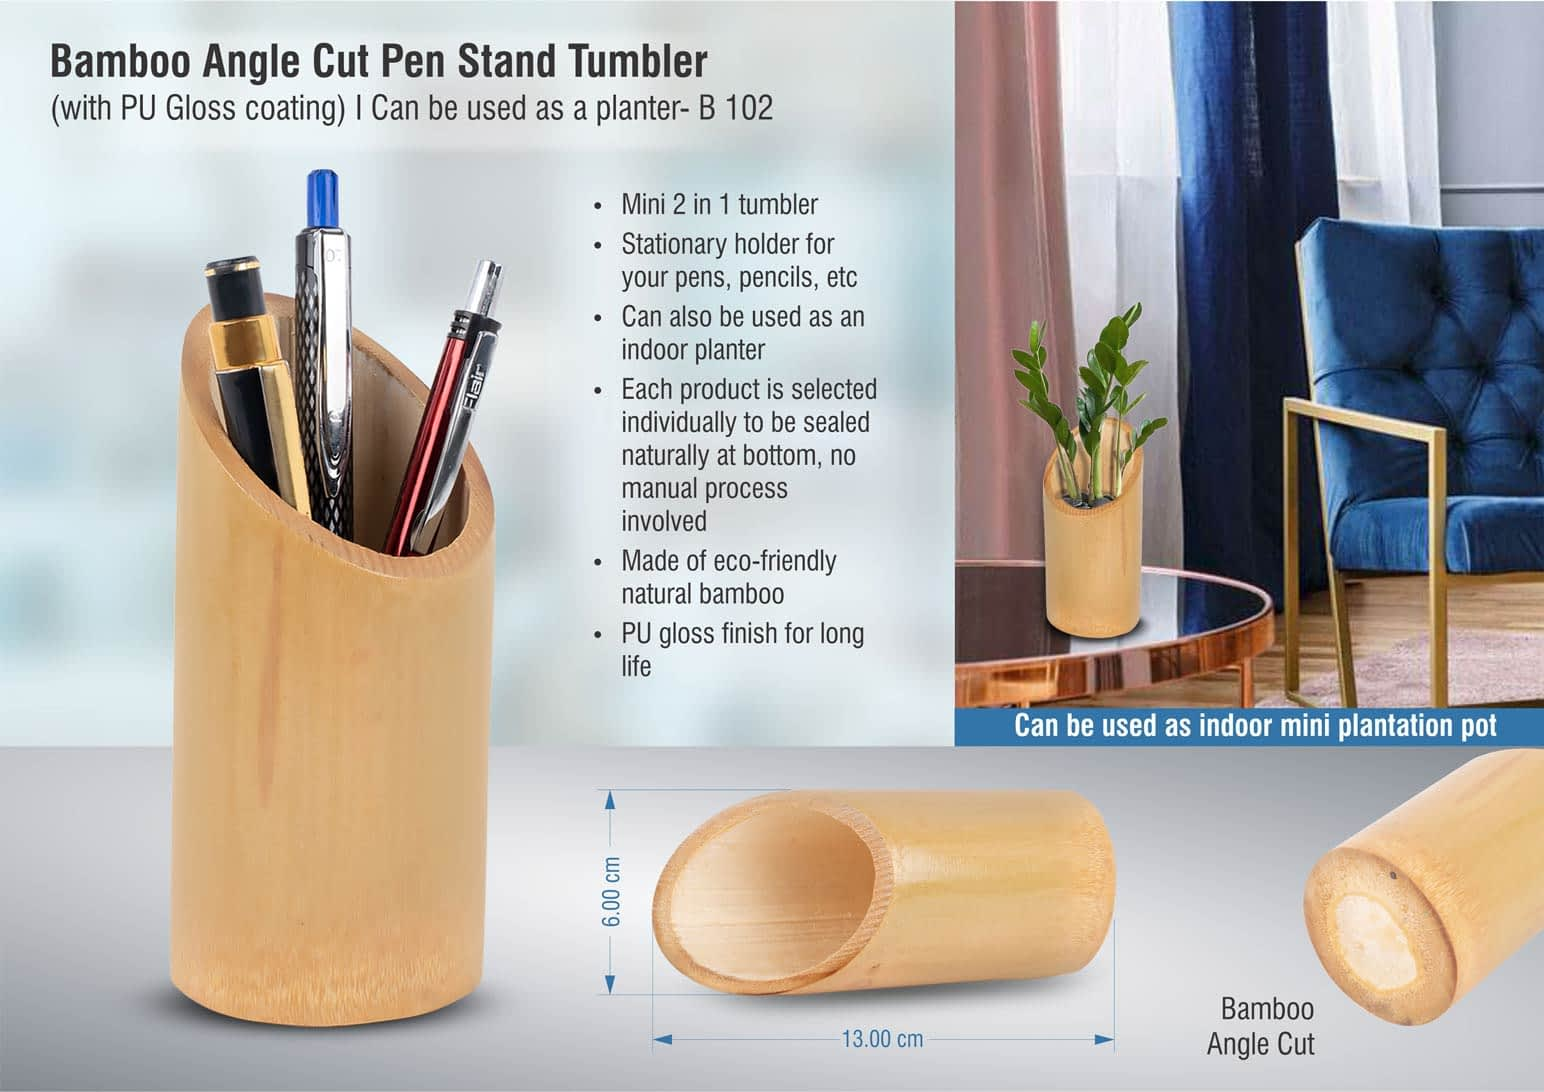 Bamboo Angle Cut Pen Stand Tumbler With PU Gloss Coating